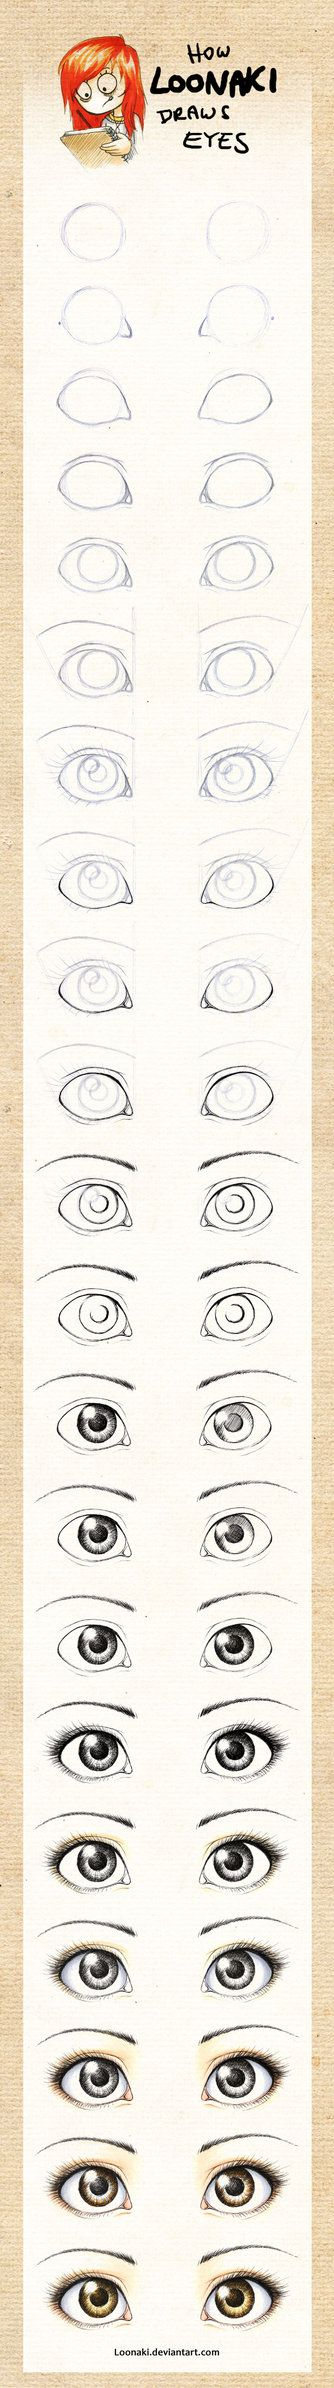 How to draws eyes, drawing eyes tutorial, drawing lesson